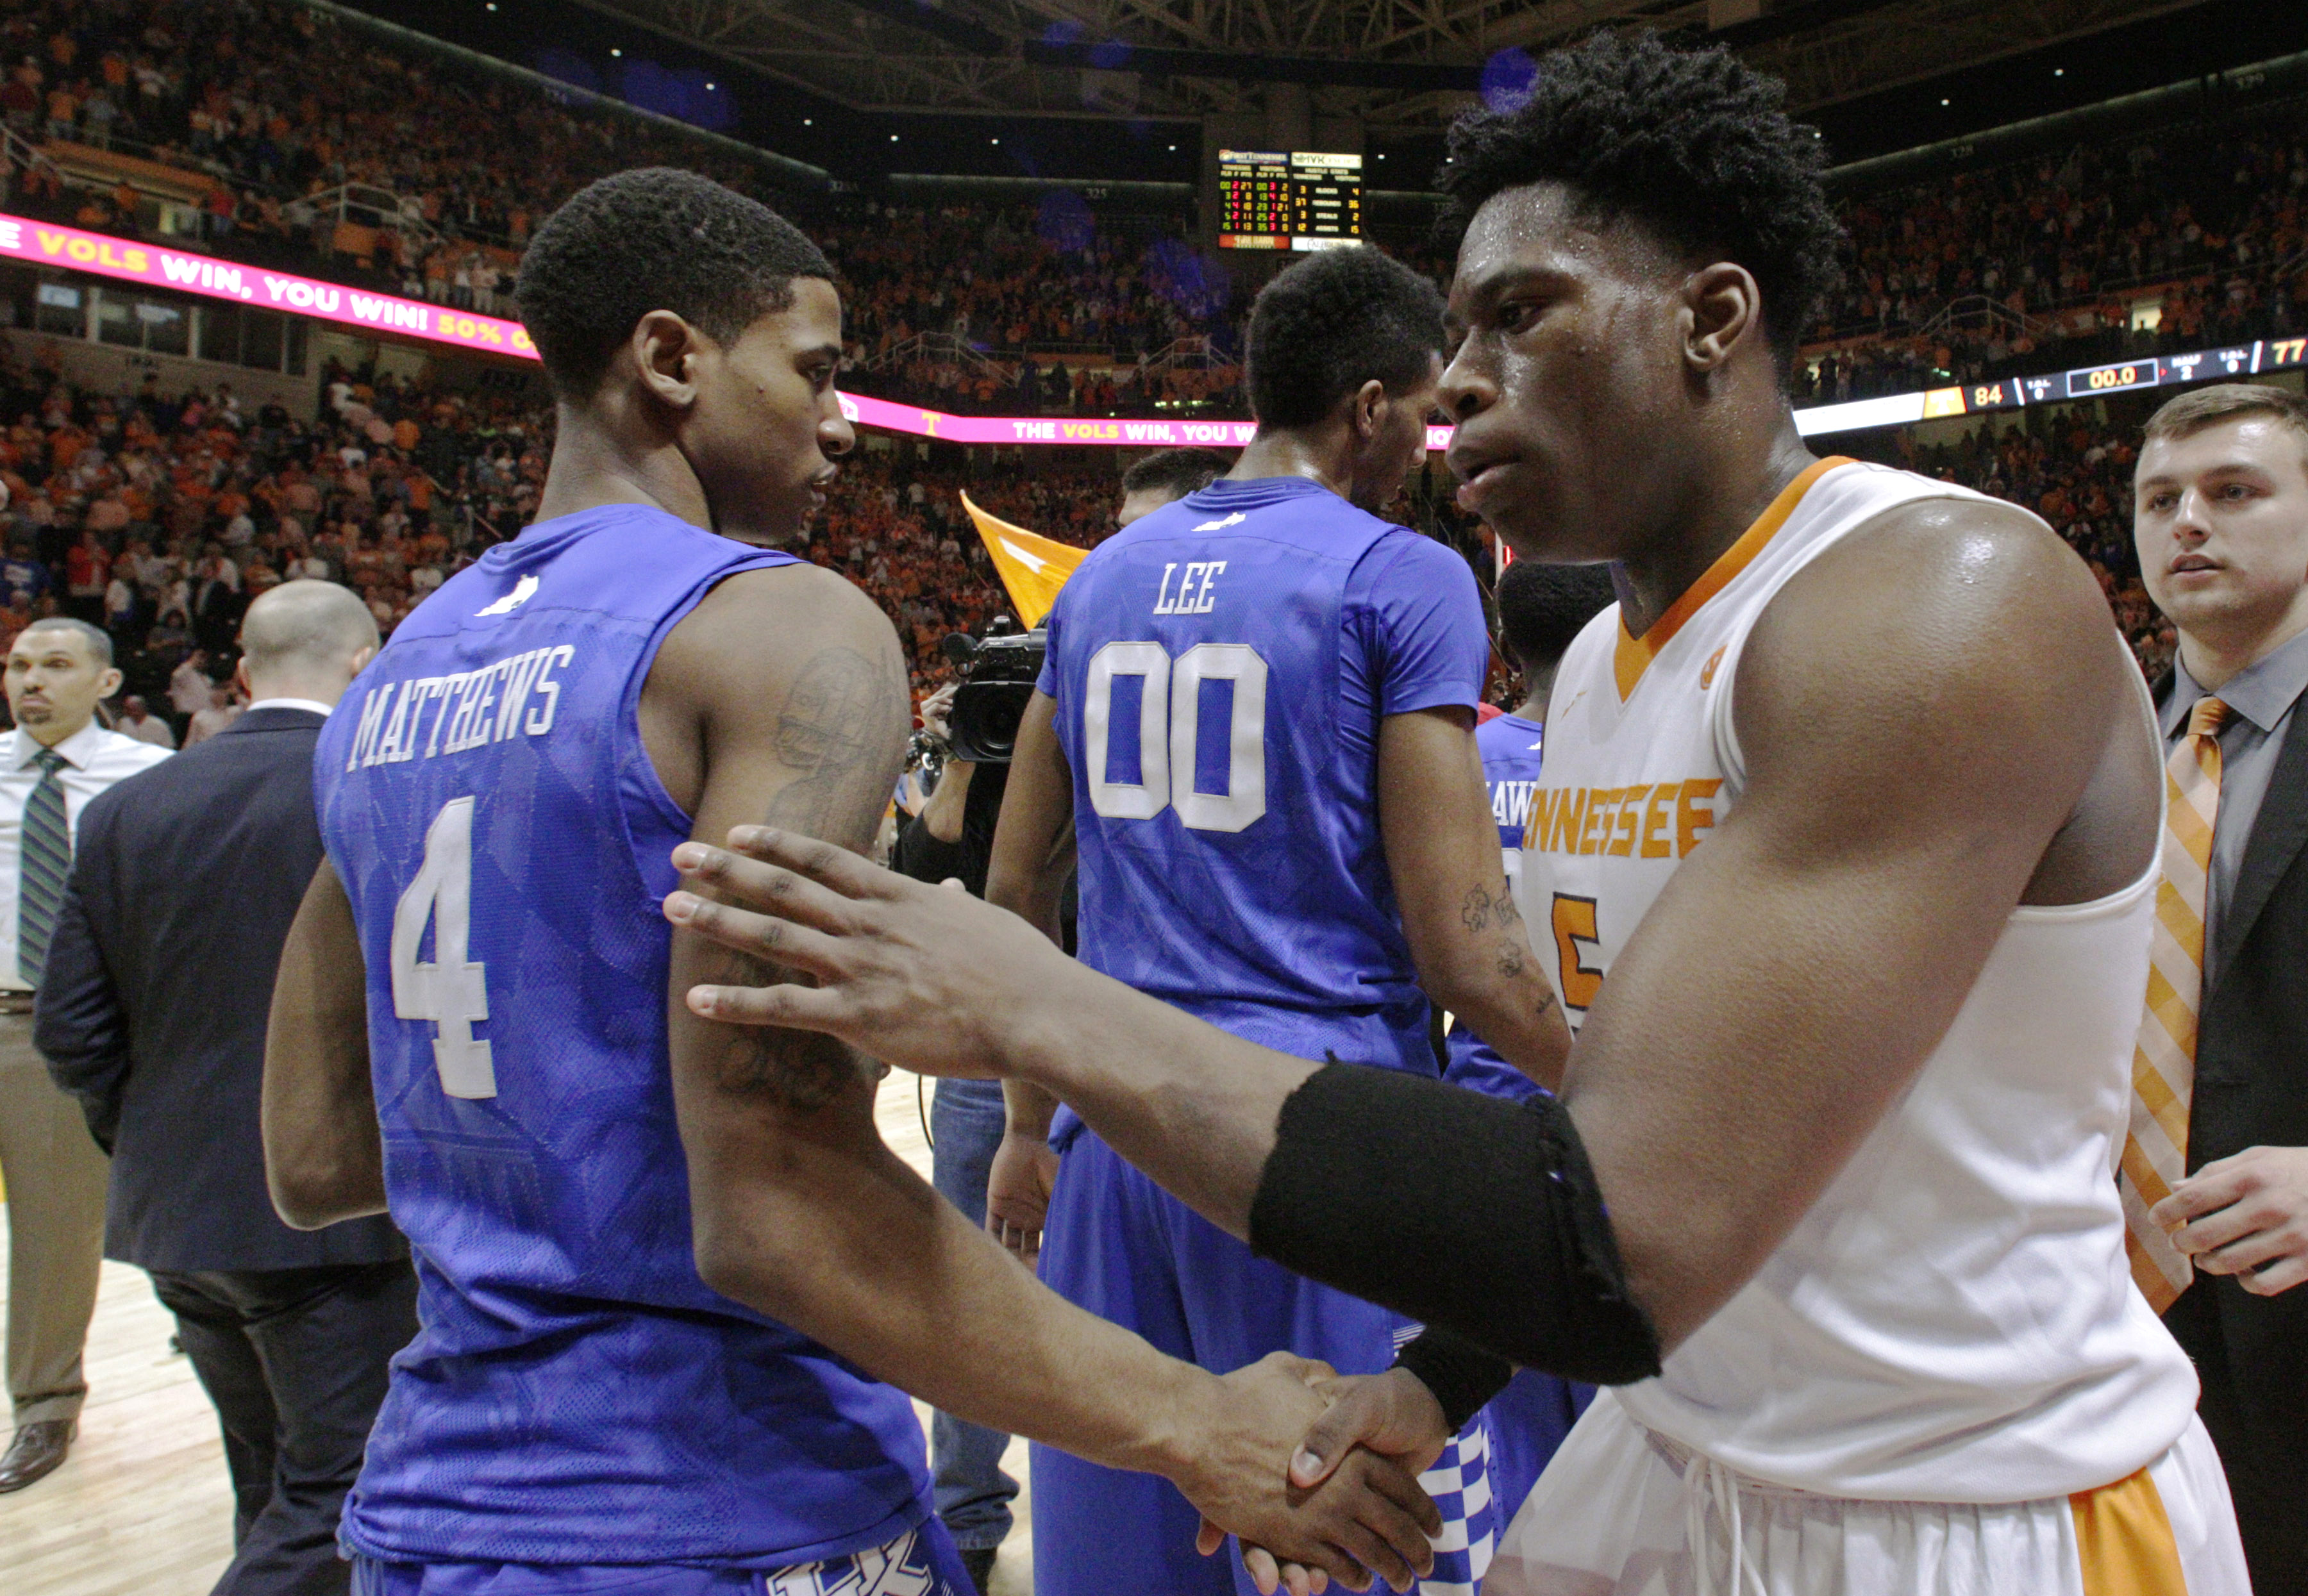 Tennessee forward Admiral Schofield (5) shakes hands with Kentucky guard Charles Matthews (4) after an NCAA college basketball game Tuesday, Feb. 2, 2016, in Knoxville, Tenn. Tennessee won 84-77. (AP Photo/Wade Payne)